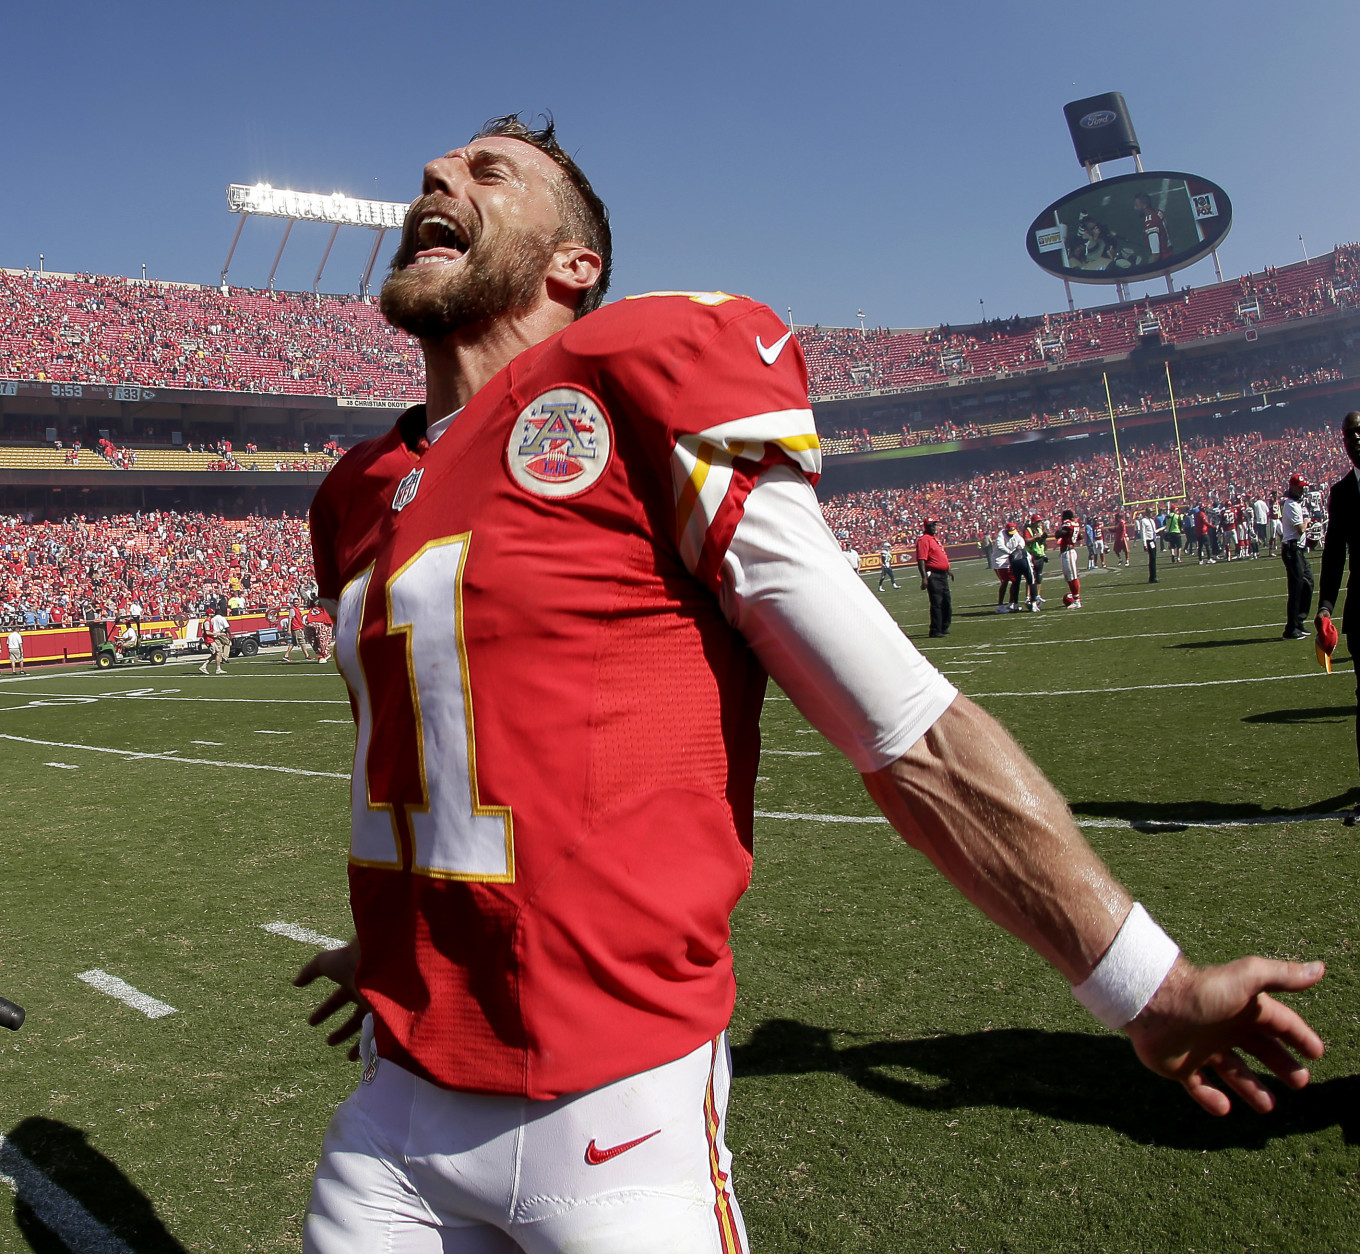 Kansas City Chiefs quarterback Alex Smith celebrates after an NFL football game against the San Diego Chargers Sunday, Sept. 11, 2016, in Kansas City, Mo. Kansas City won 33-27 in overtime. (AP Photo/Charlie Riedel)